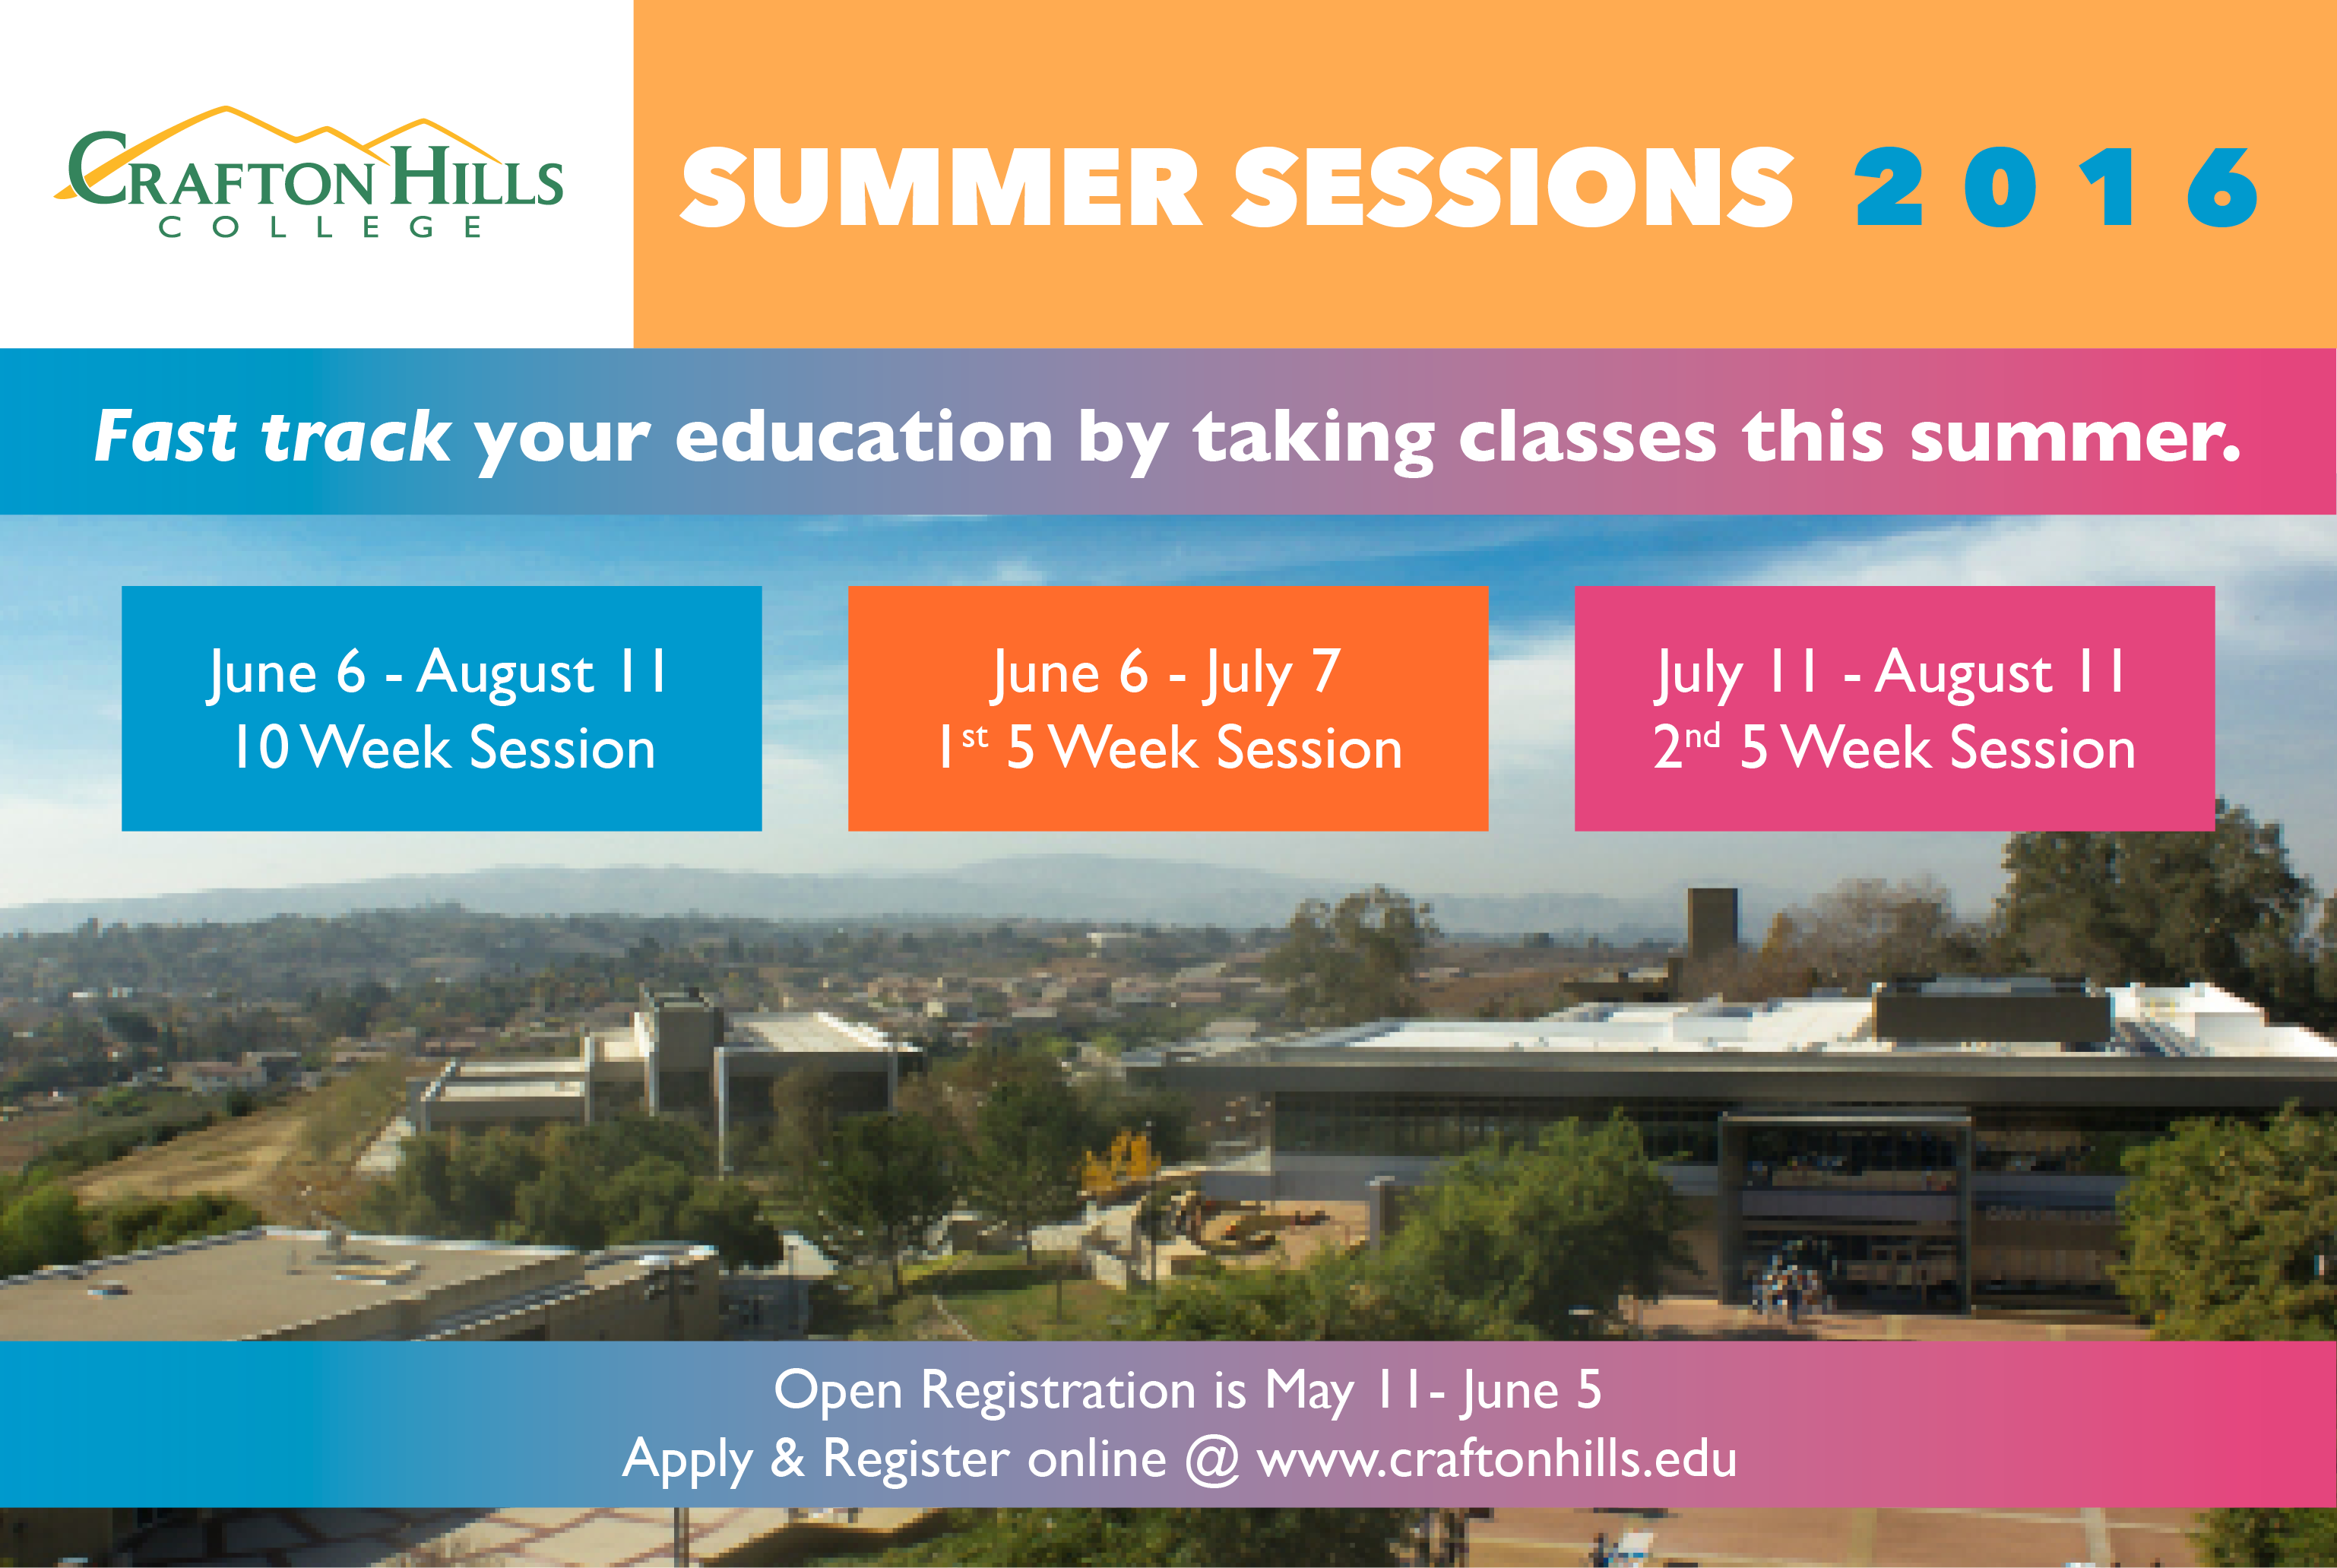 Crafton Hills College Summer Sessions 2016: Fast track your education by taking classes this summer.  June 6 - August 11: 10 Week Session, June 6 - July 7: 1st 5 Week Session, July 11 - August 11: 2nd 5 Week Session.  Open Registration is May 11 - June 5.  Apply and Register online @ www.craftonhills.edu